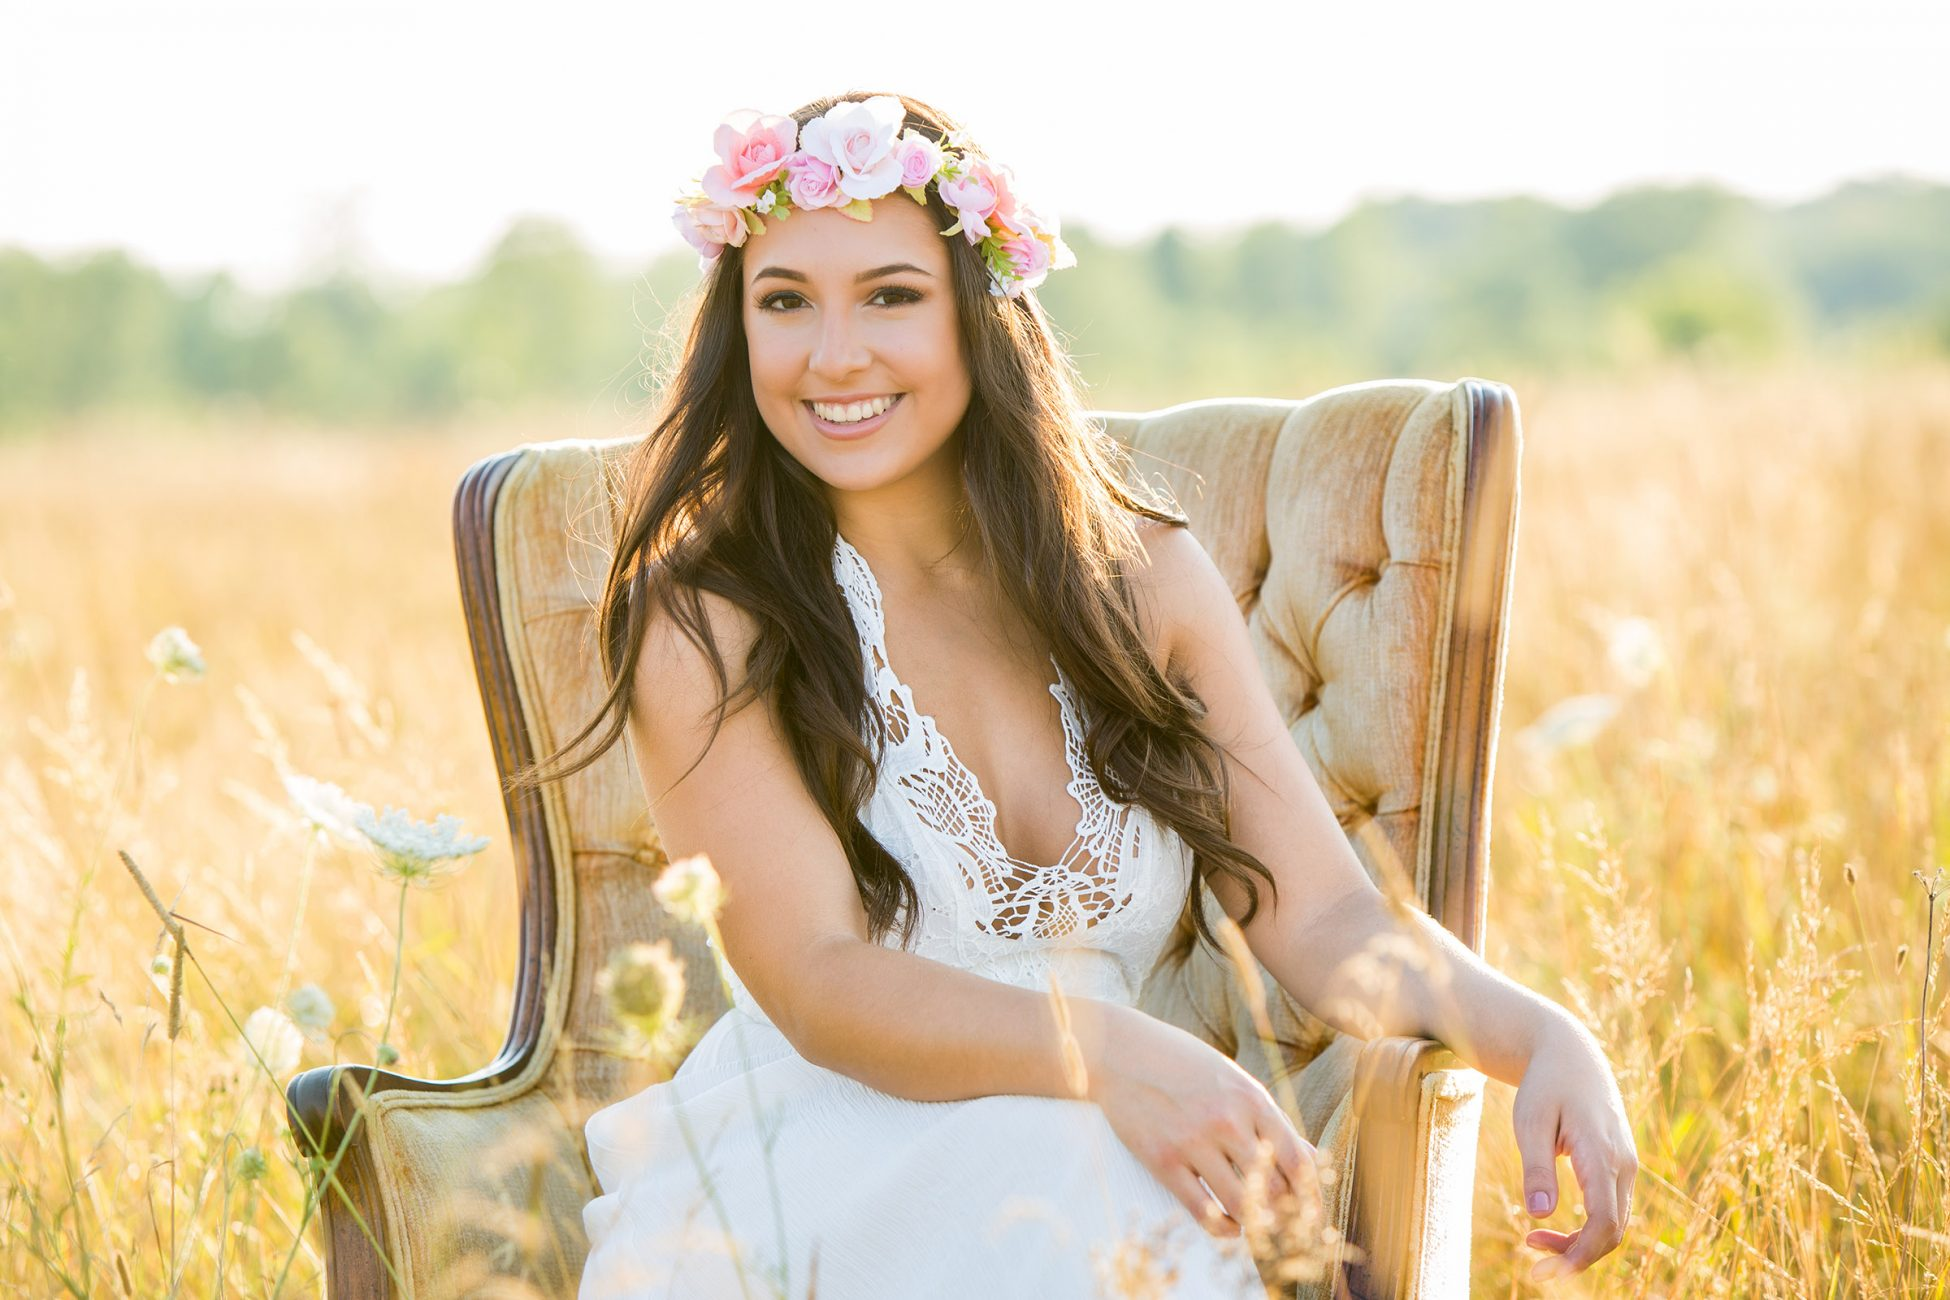 Boho Senior Girl with flower crown in a field